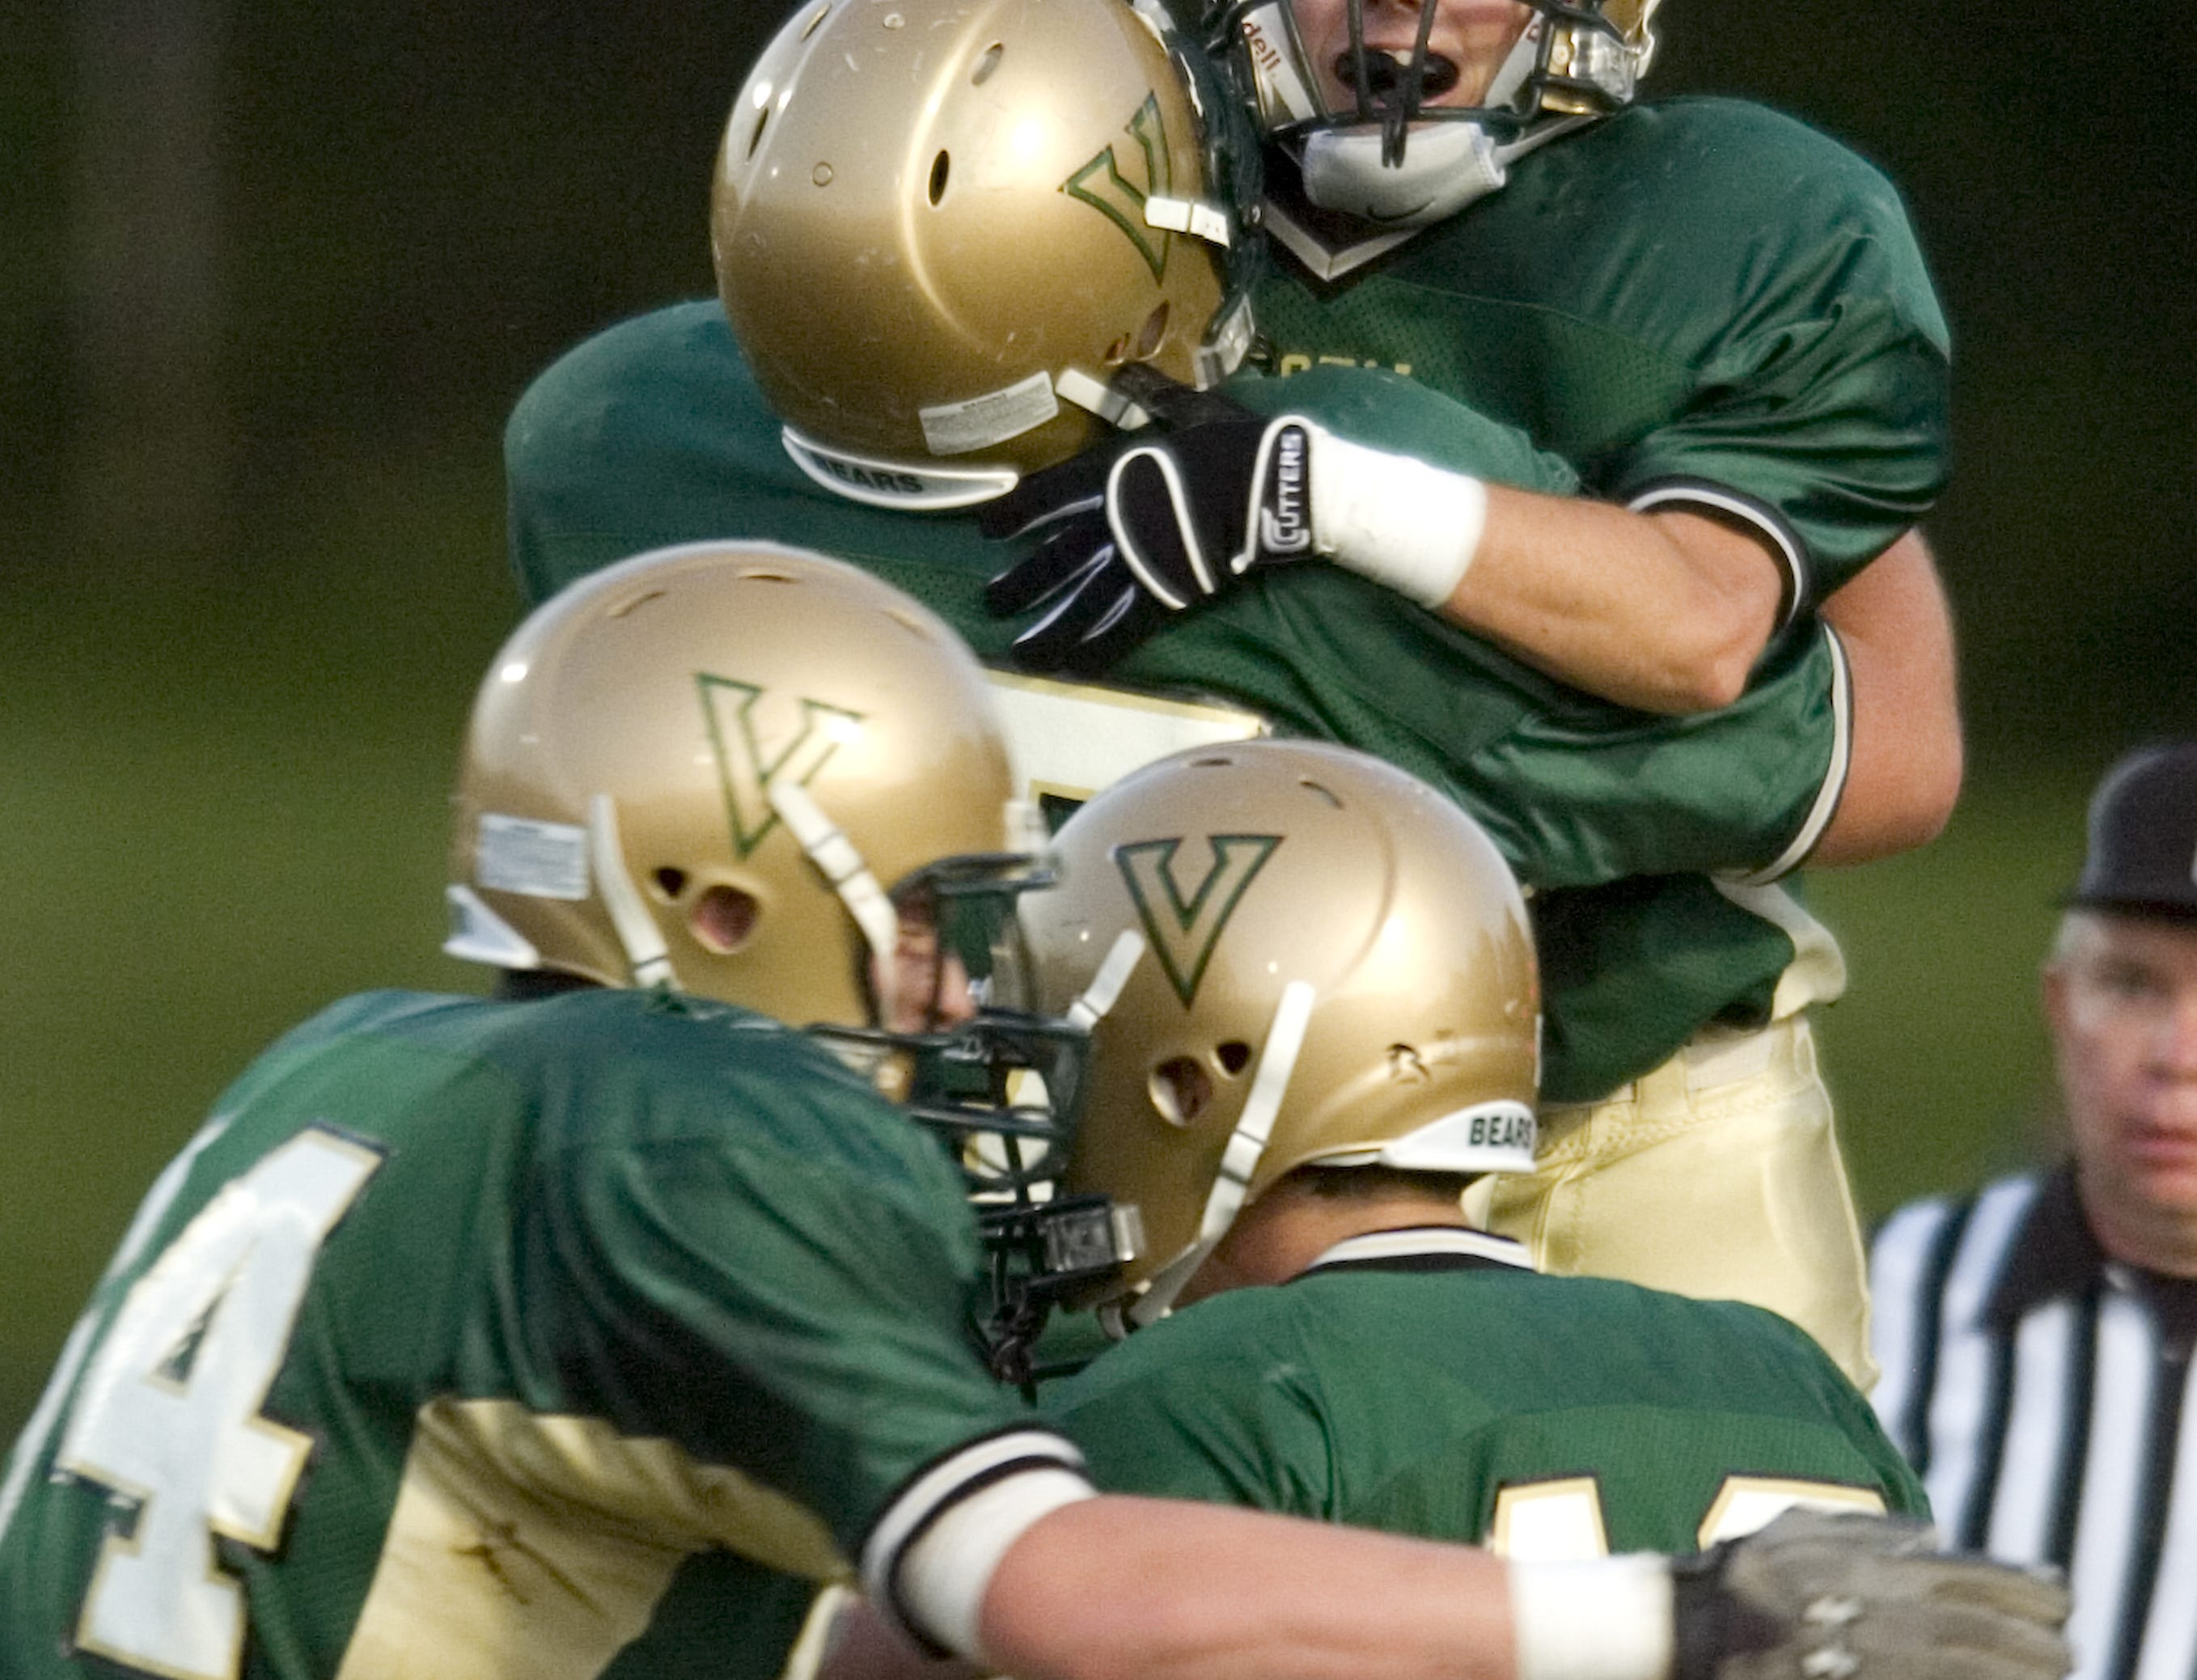 In 2009 Vestal's Nick Anderson, top right, is lifted up by Kyle Sherman as they and teammates Nick Keeler, bottom right, and Chris Bowe celebrate Anderson's touchdown reception in the first quarter of the game at Vestal's Dick Hoover Stadium.